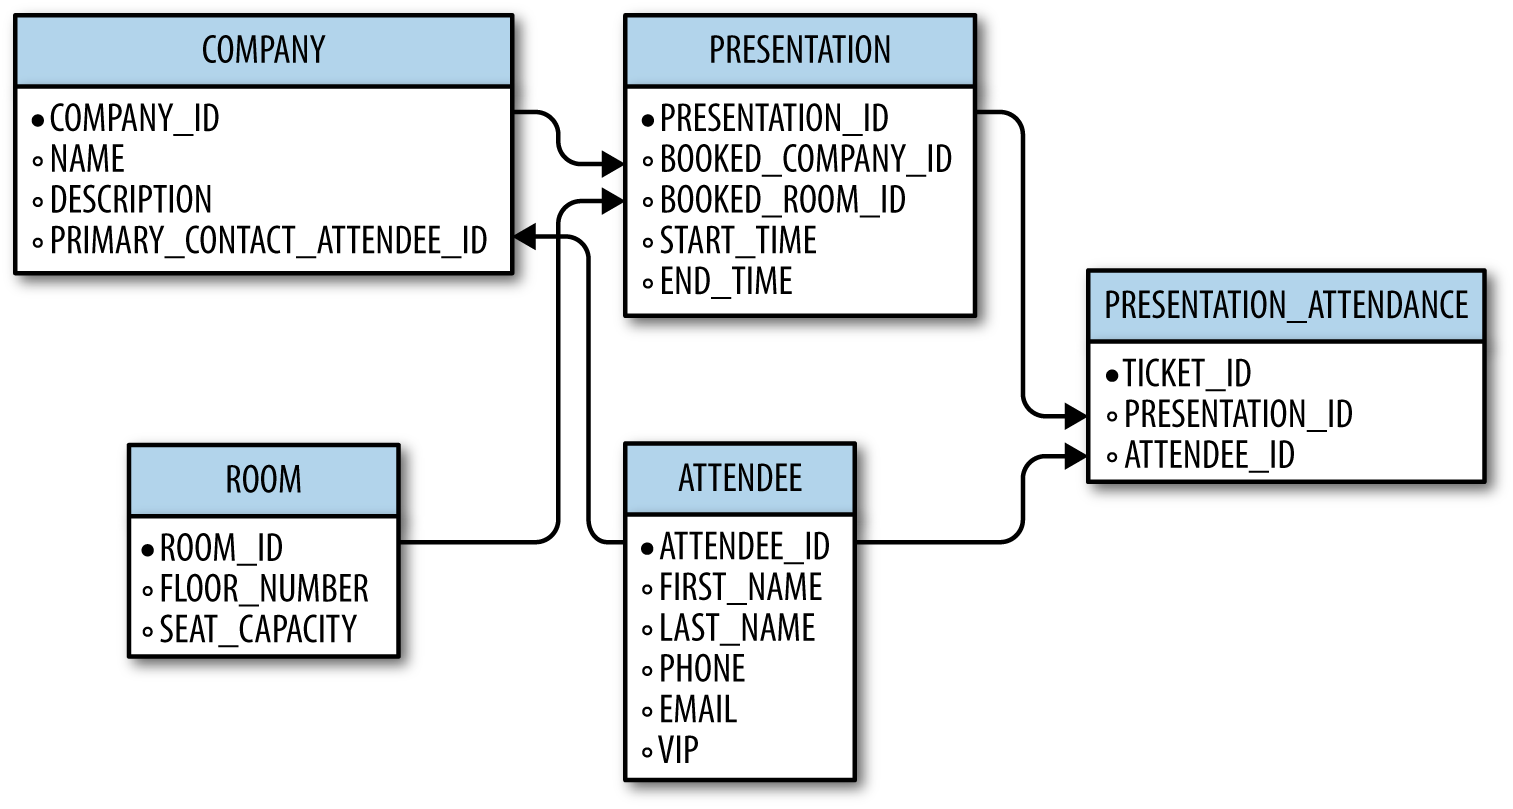 The database schema for the SurgeTech conference, with all tables and relationships